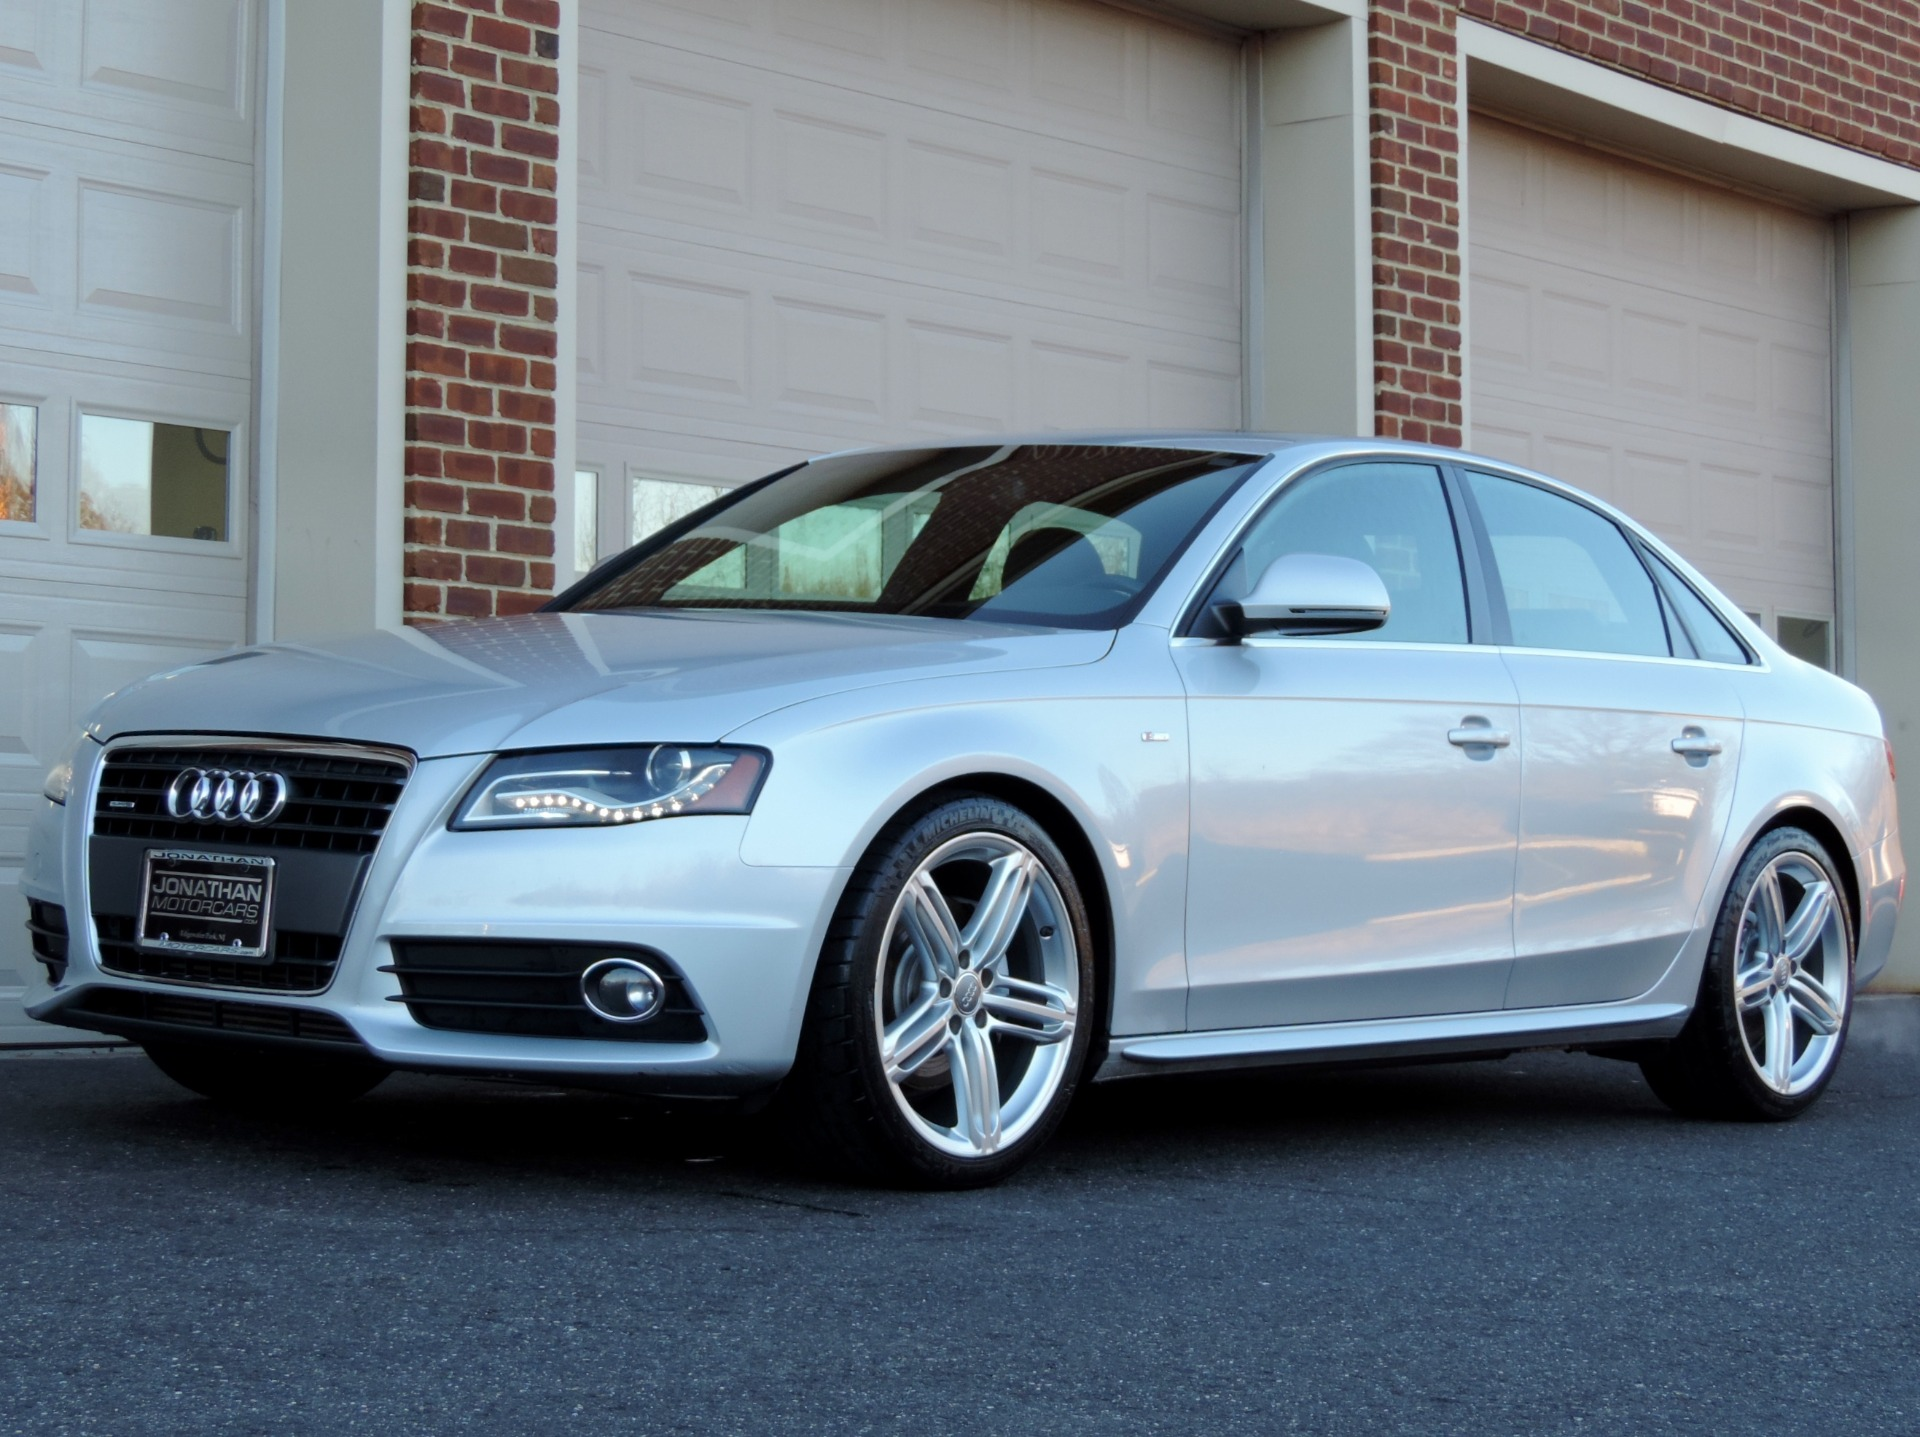 2009 audi a4 2 0t quattro stock 061317 for sale near edgewater park nj nj audi dealer. Black Bedroom Furniture Sets. Home Design Ideas